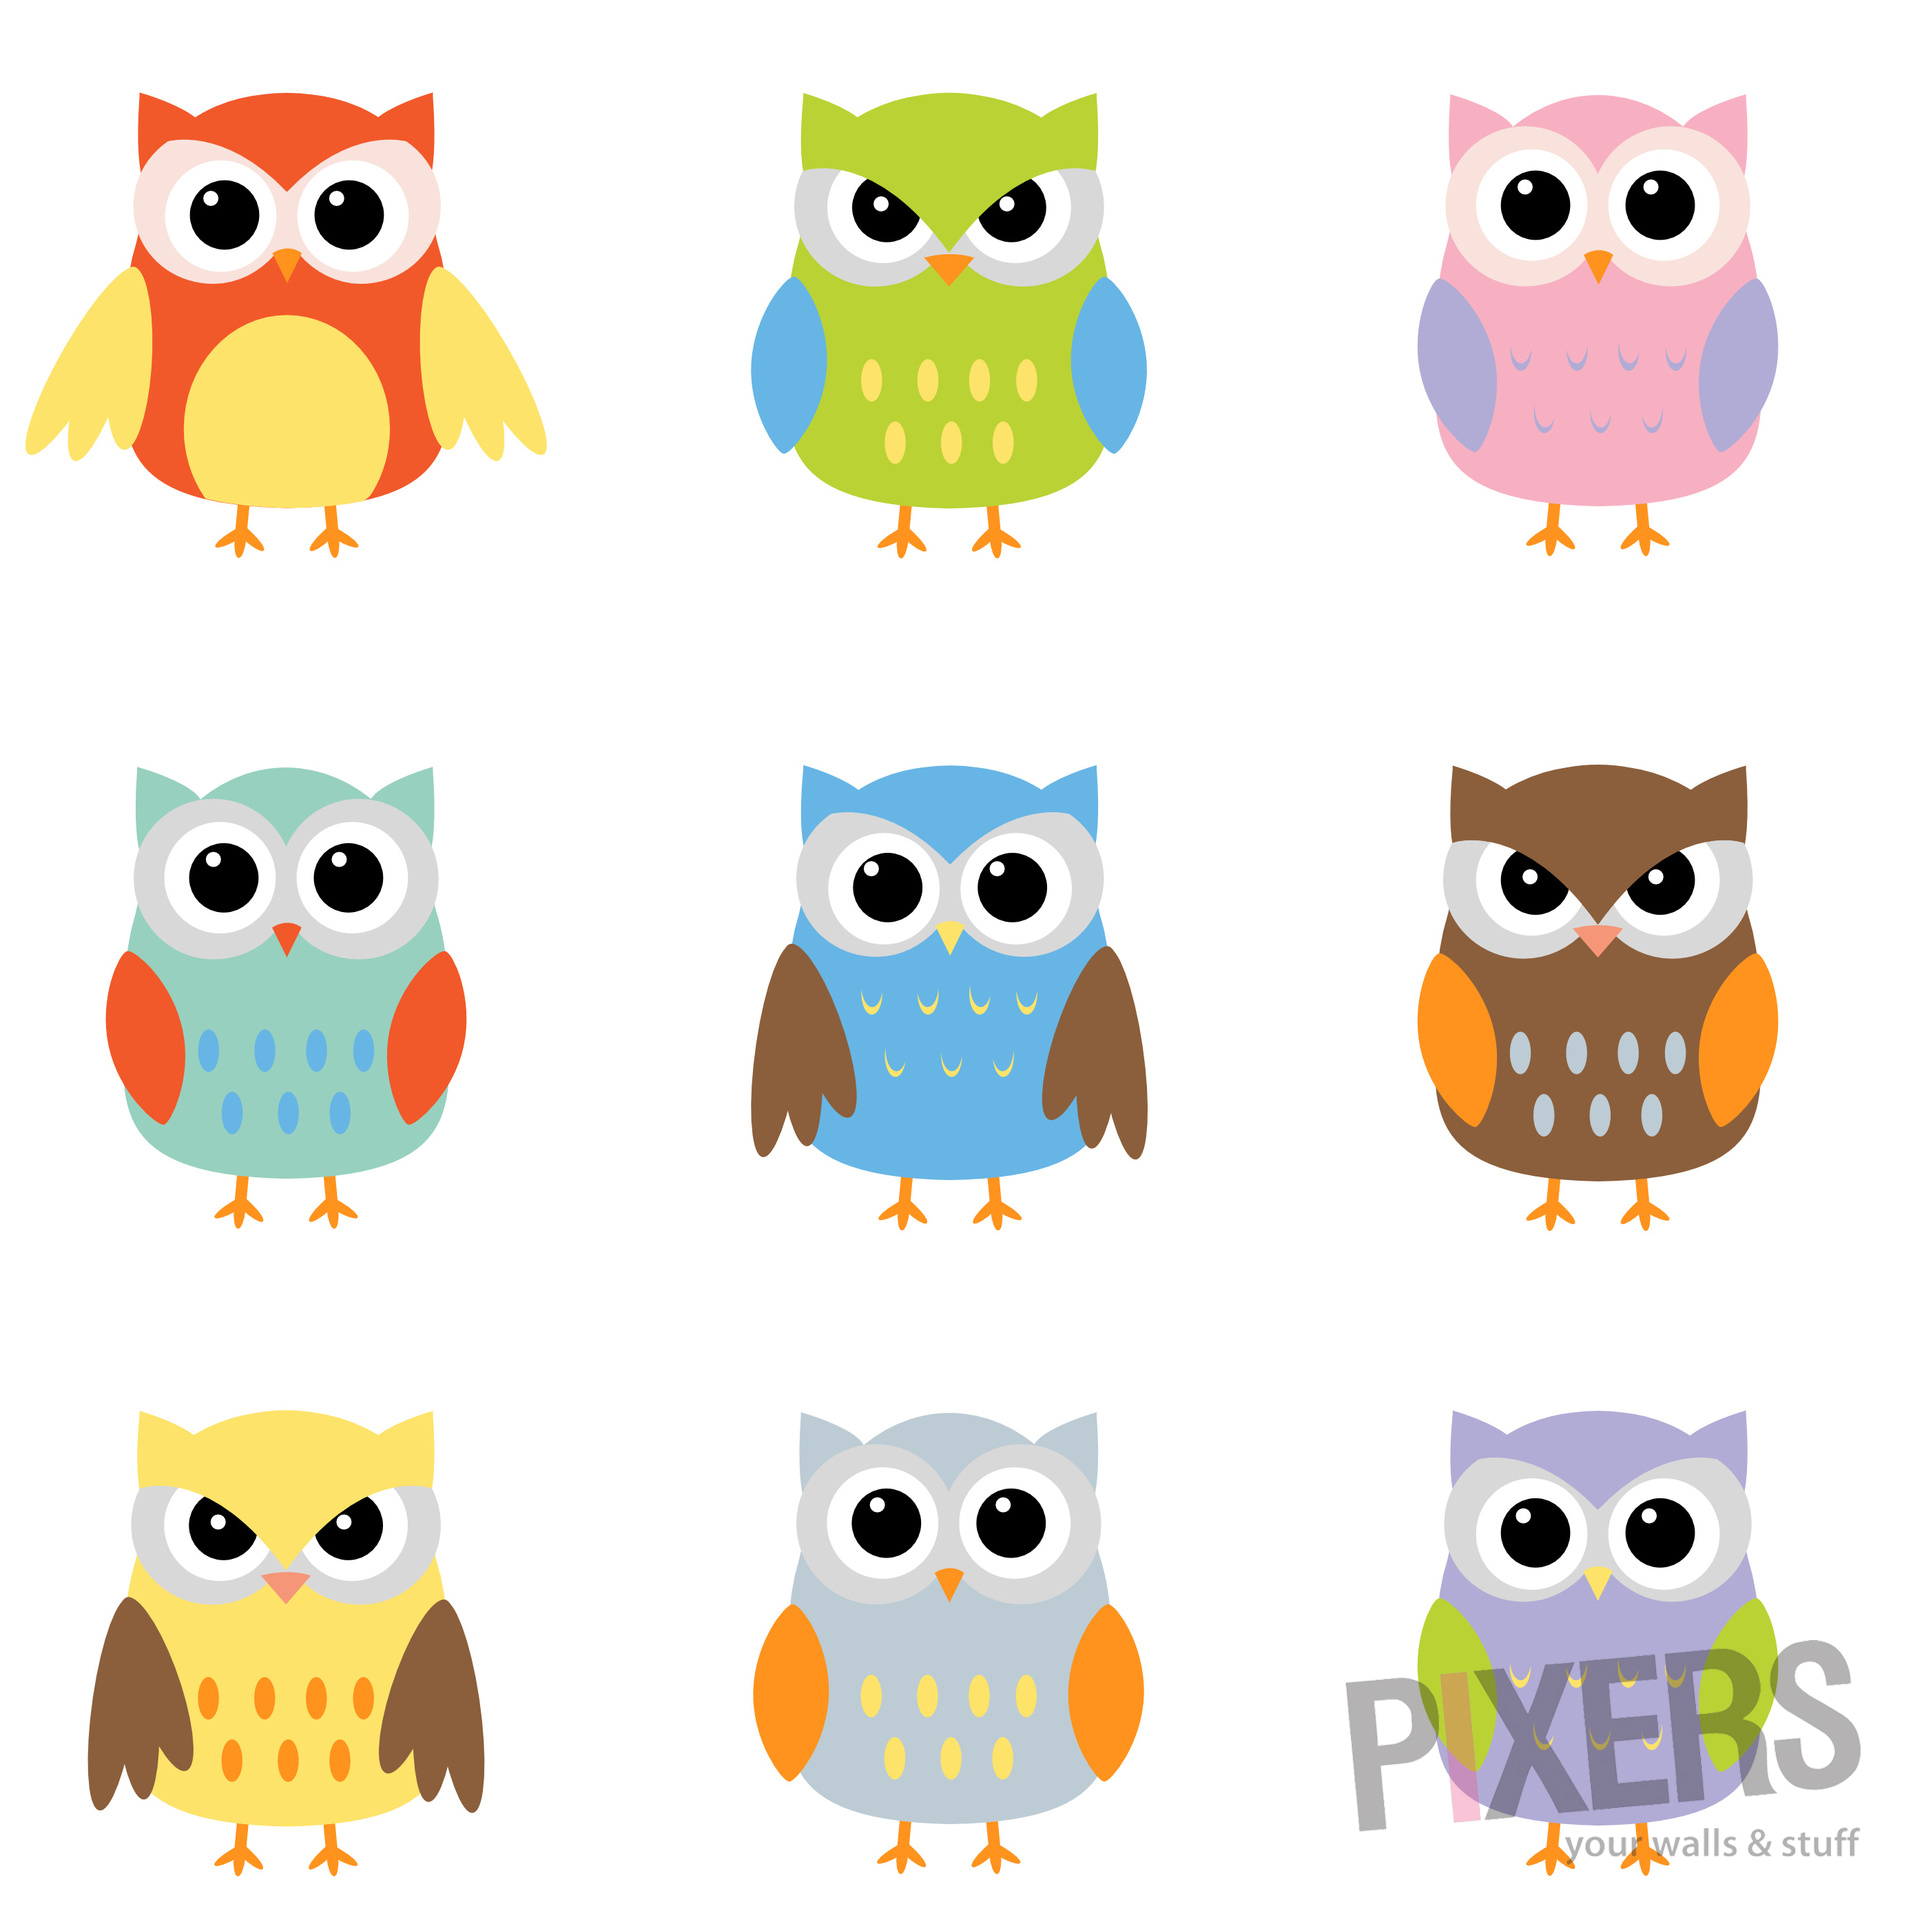 Cute Owl Decor Awesome Owl Decorations For Your Home Pixersize Clip Art